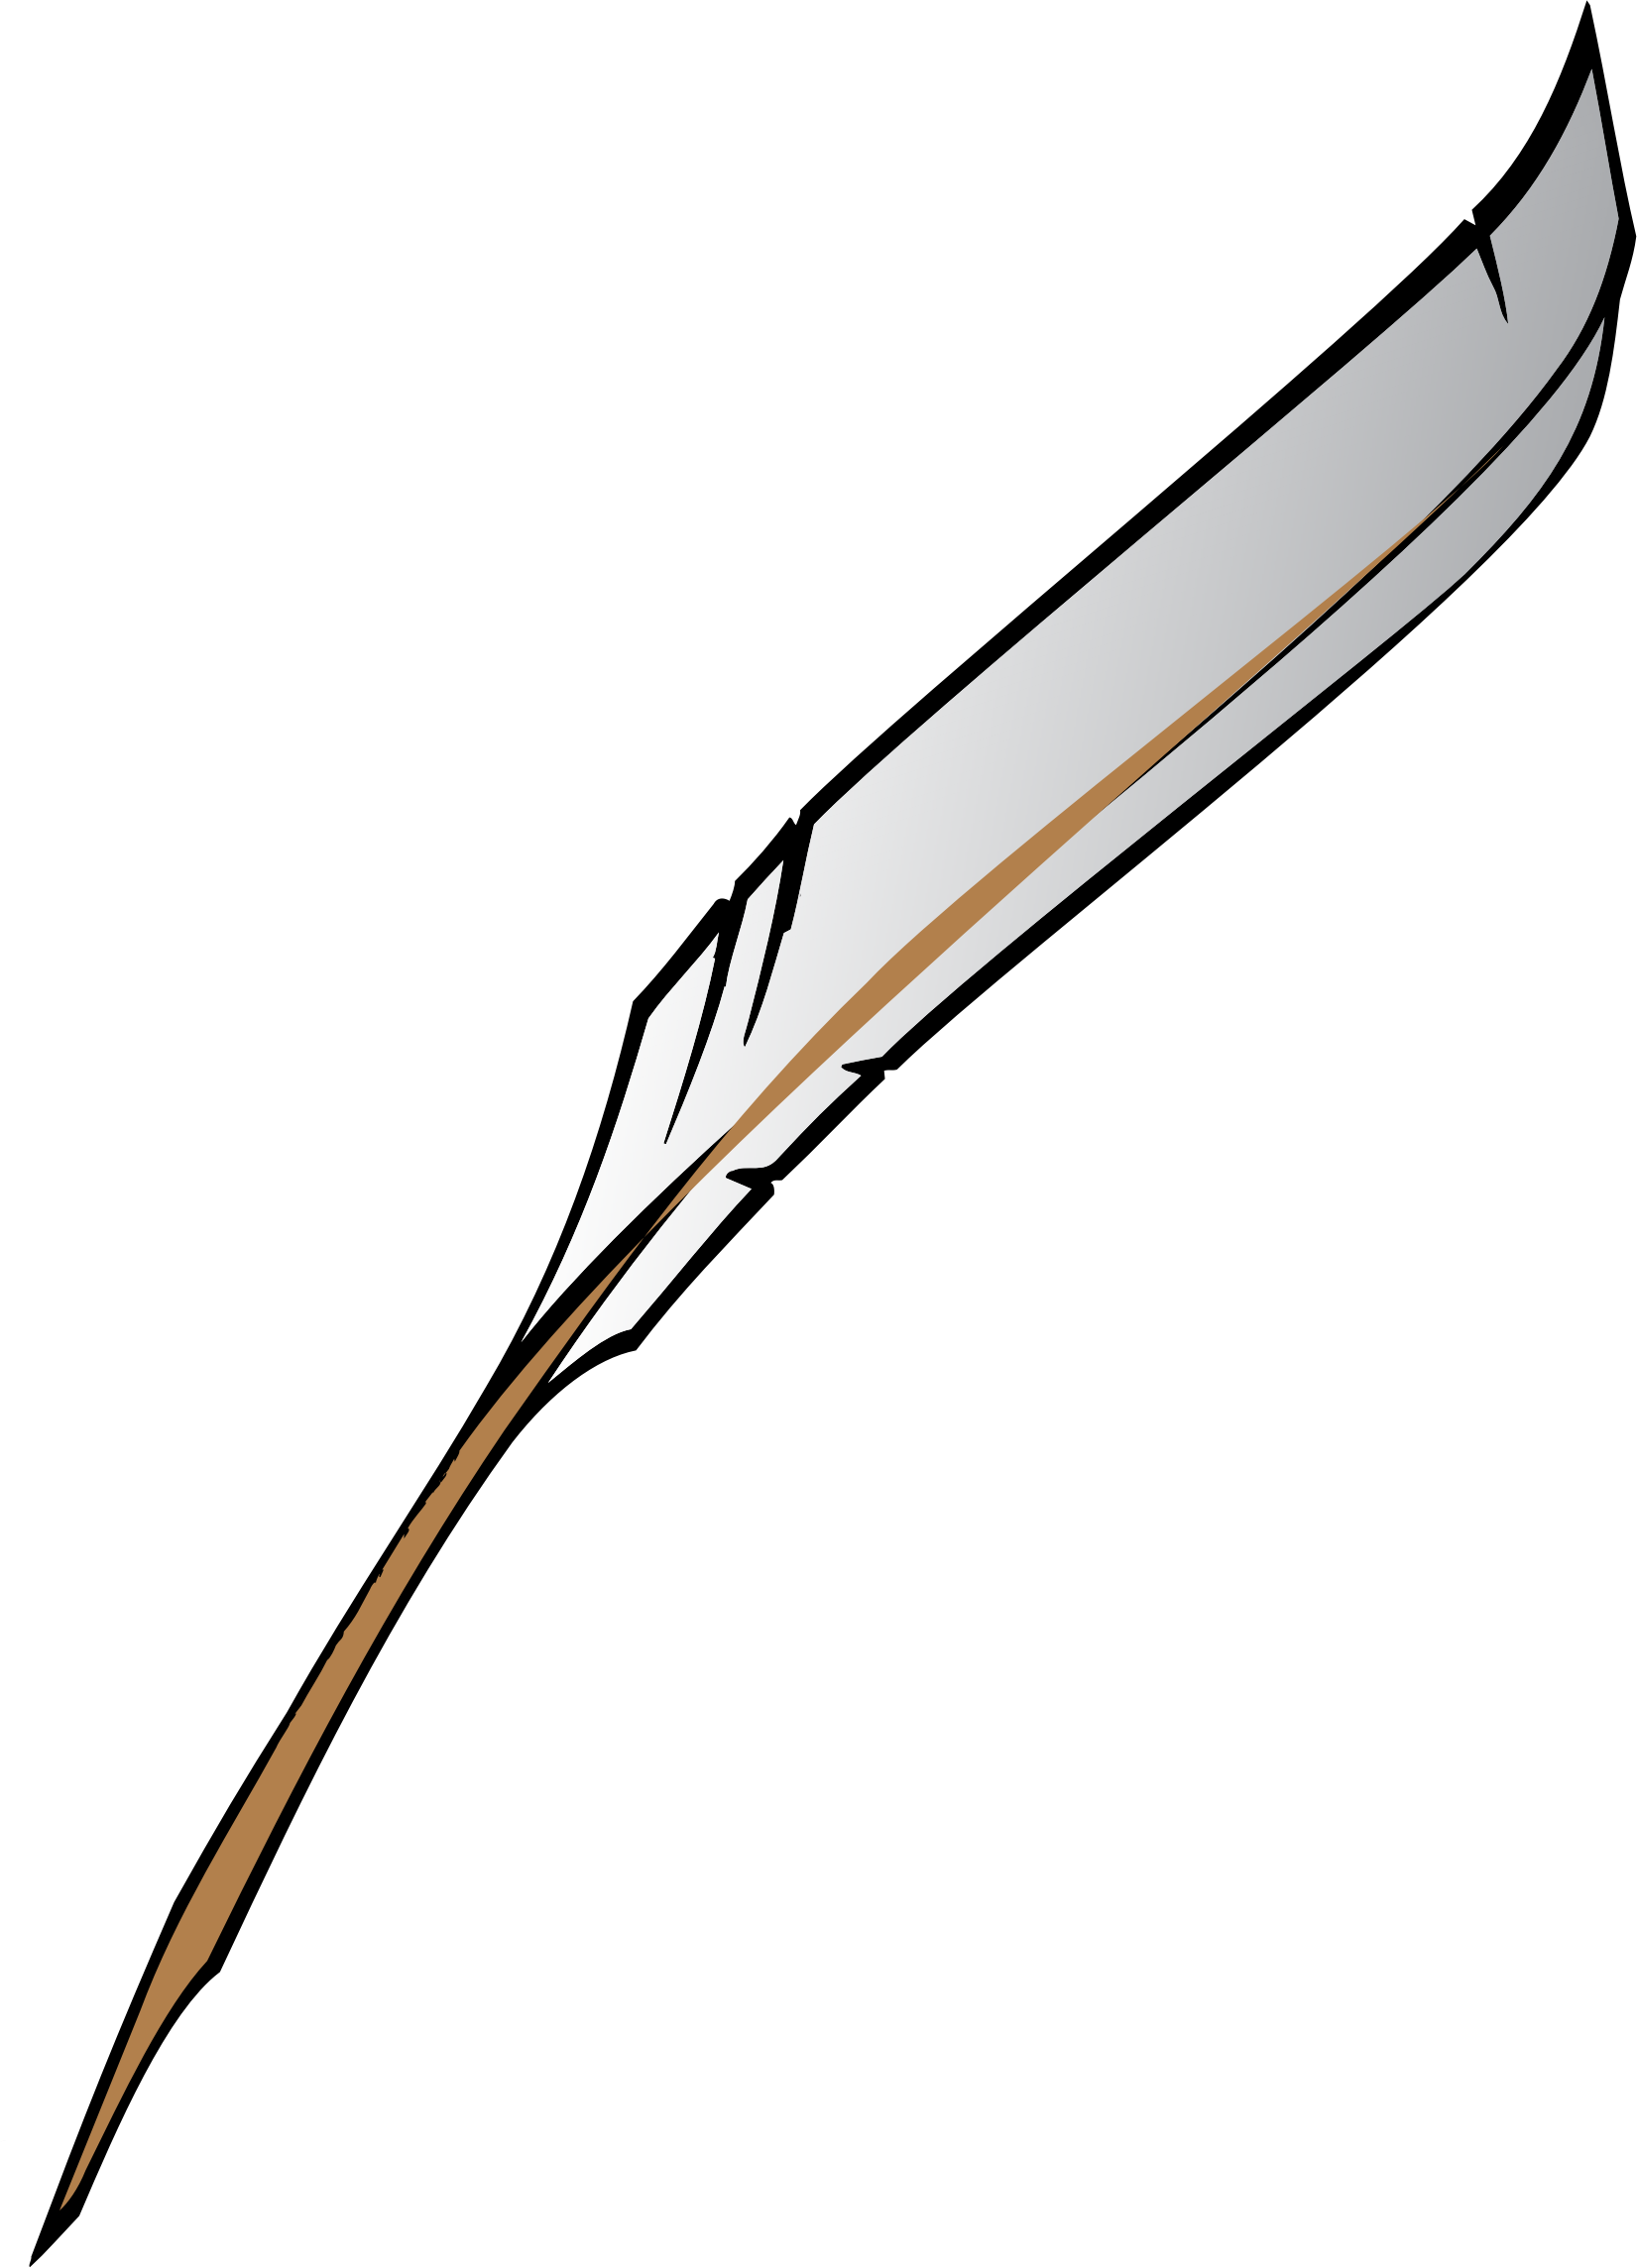 Feather pen vector png. Writer clipart quill